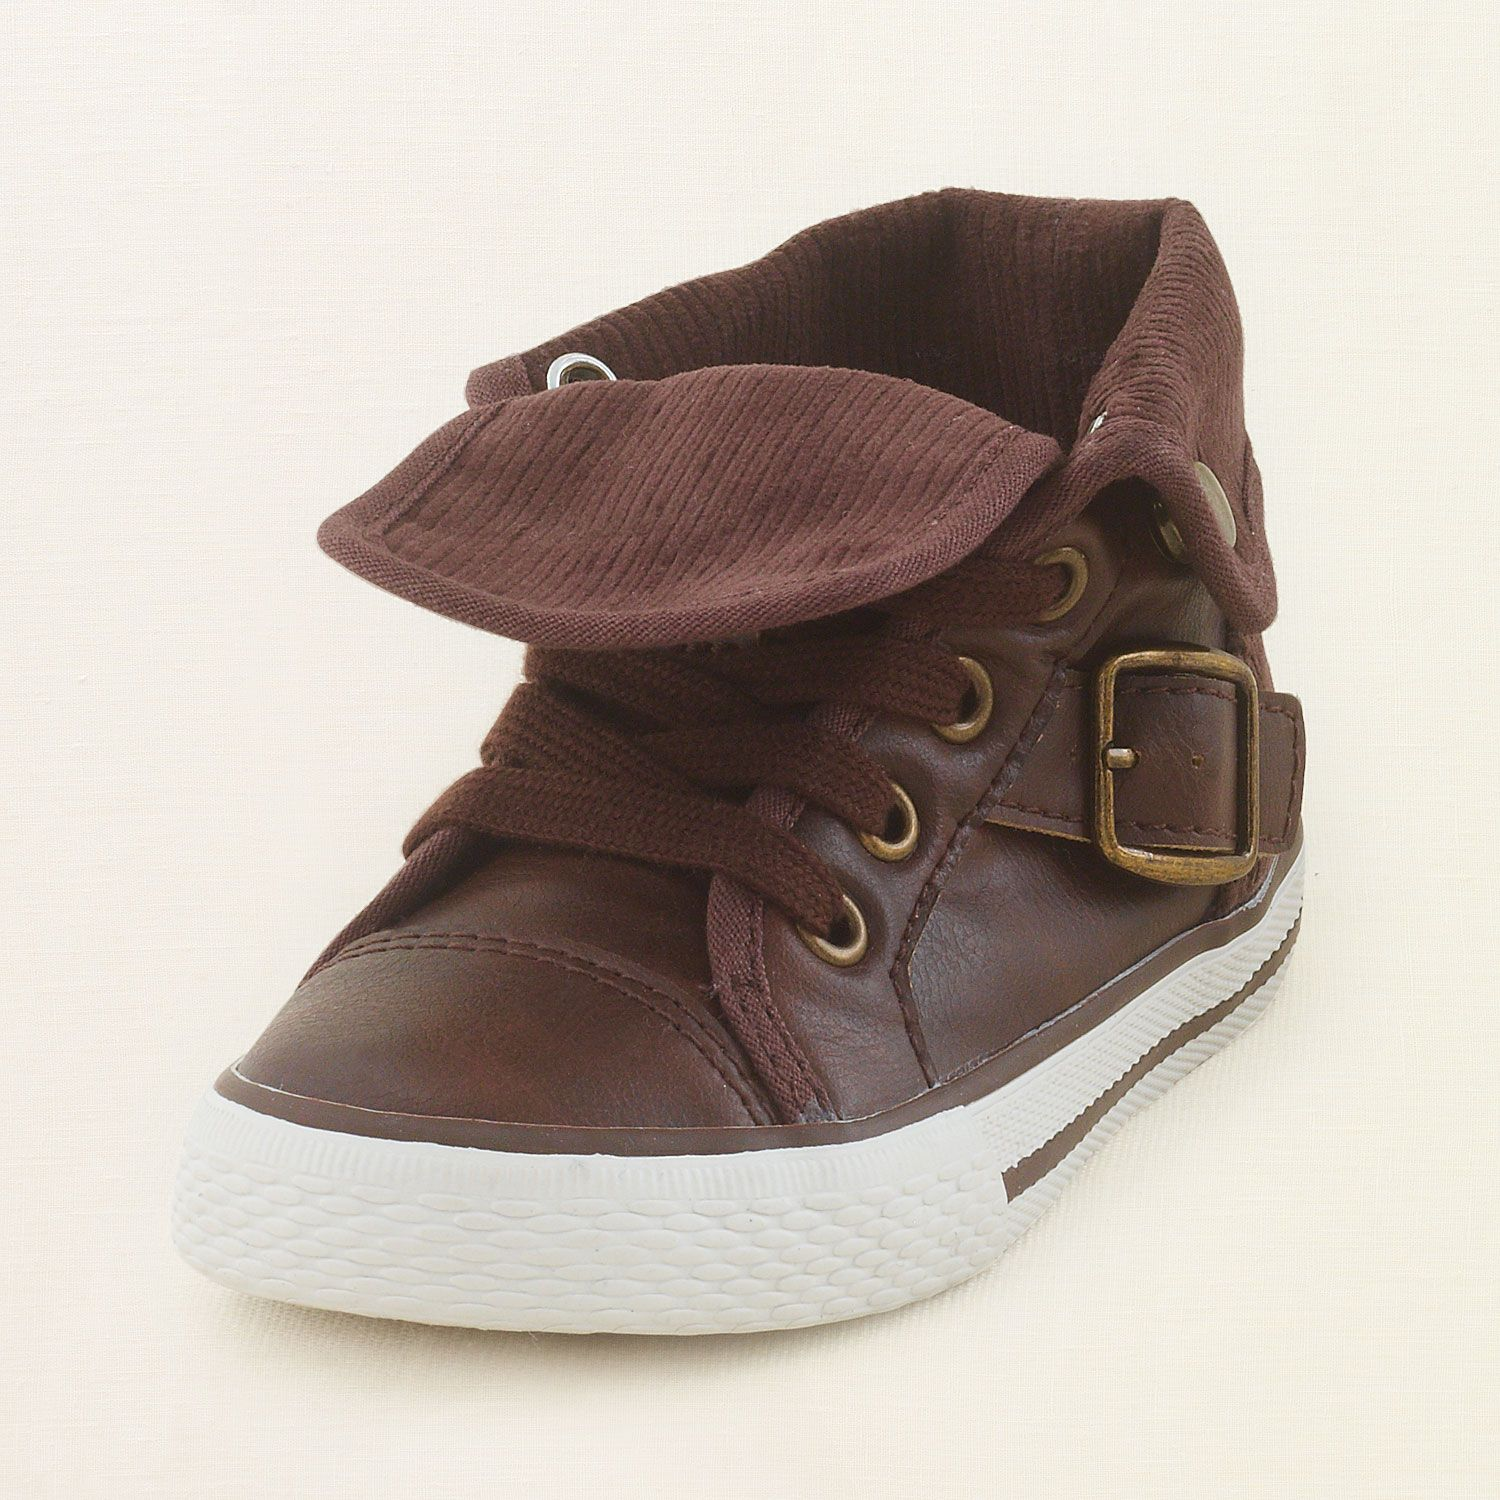 baby boy - shoes - hipster sneaker | Children's Clothing | Kids ...